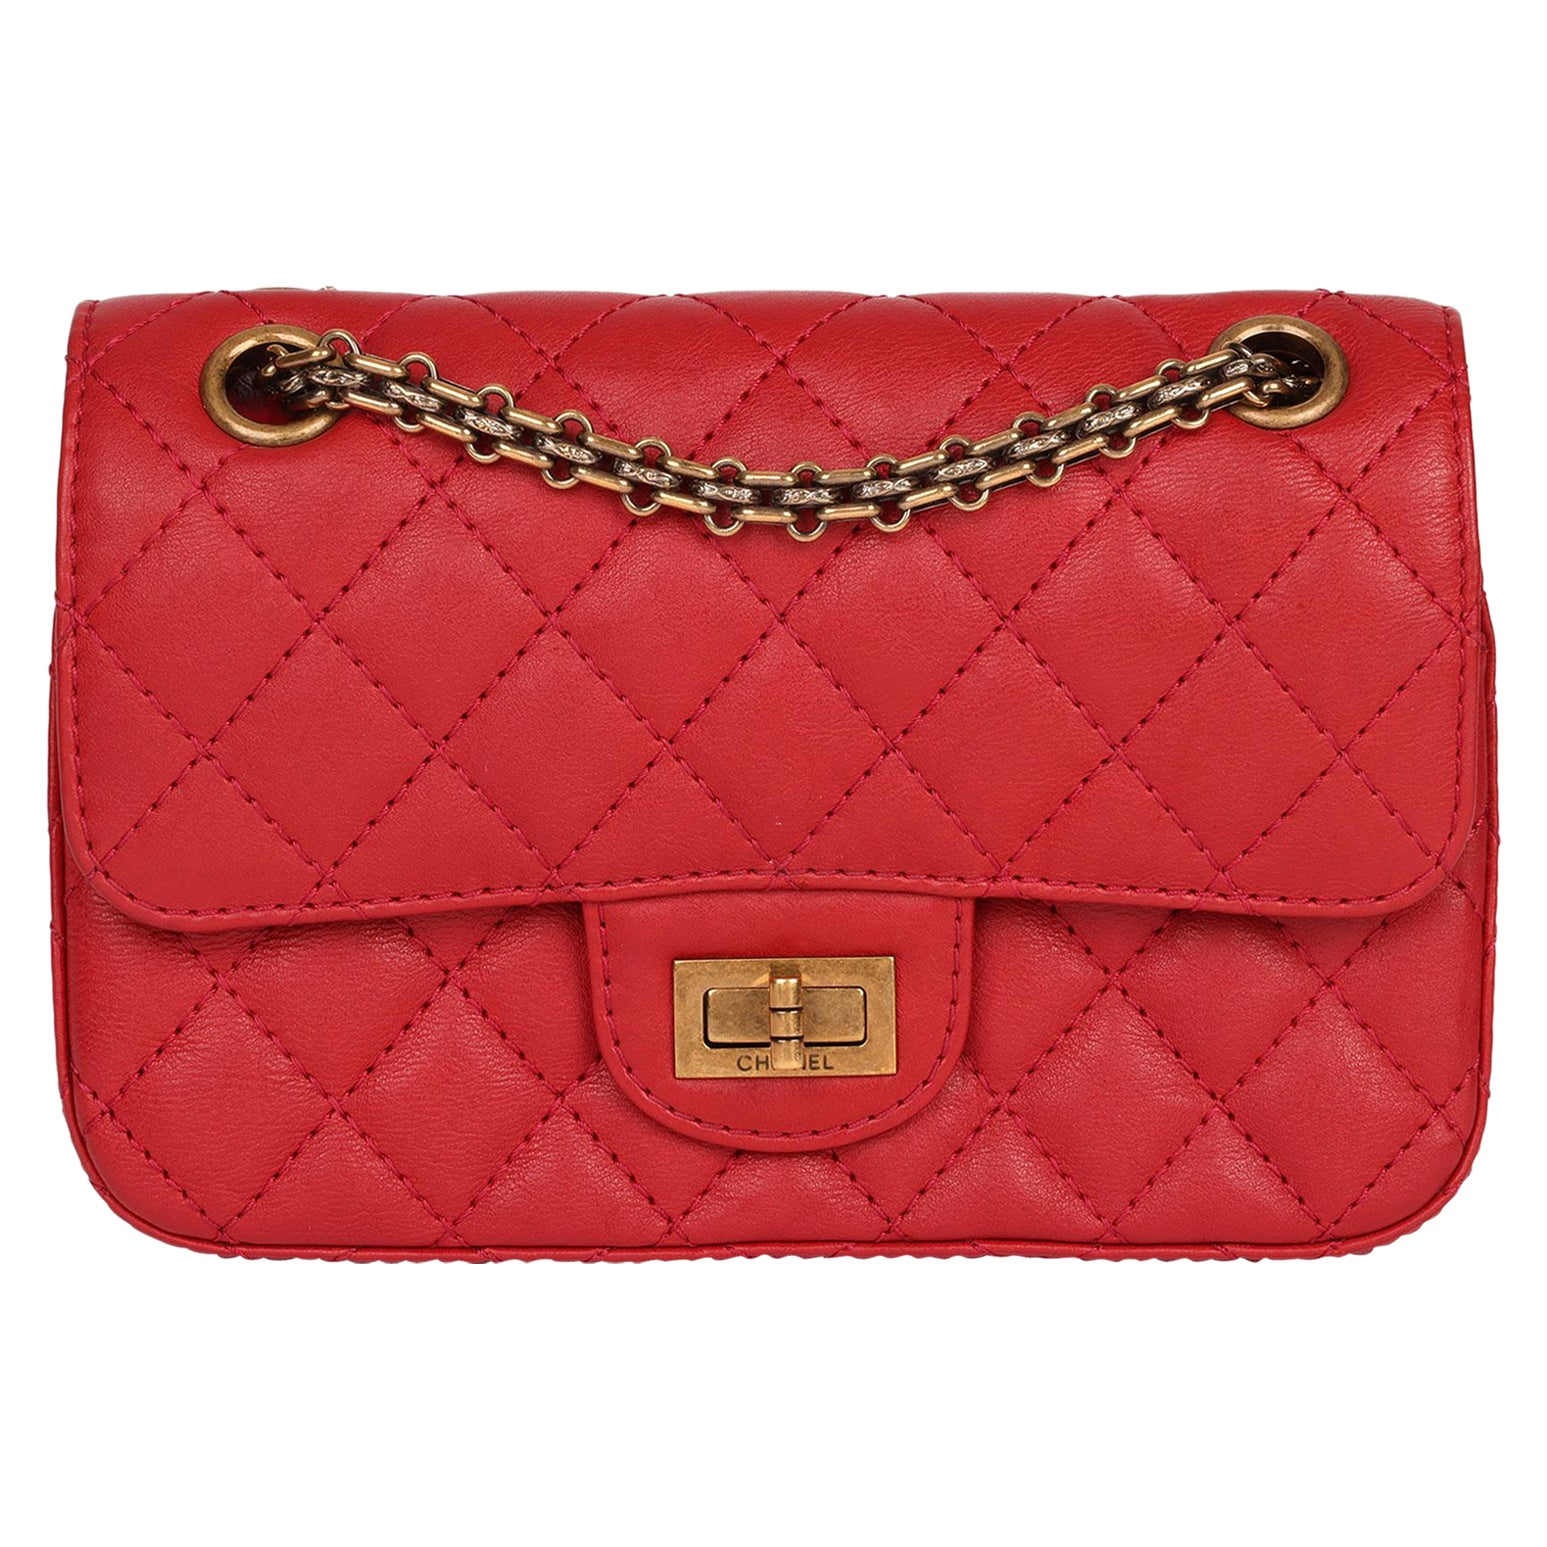 Chanel Red Quilted Calfskin Leather 2.55 Reissue 224 Double Flap Bag